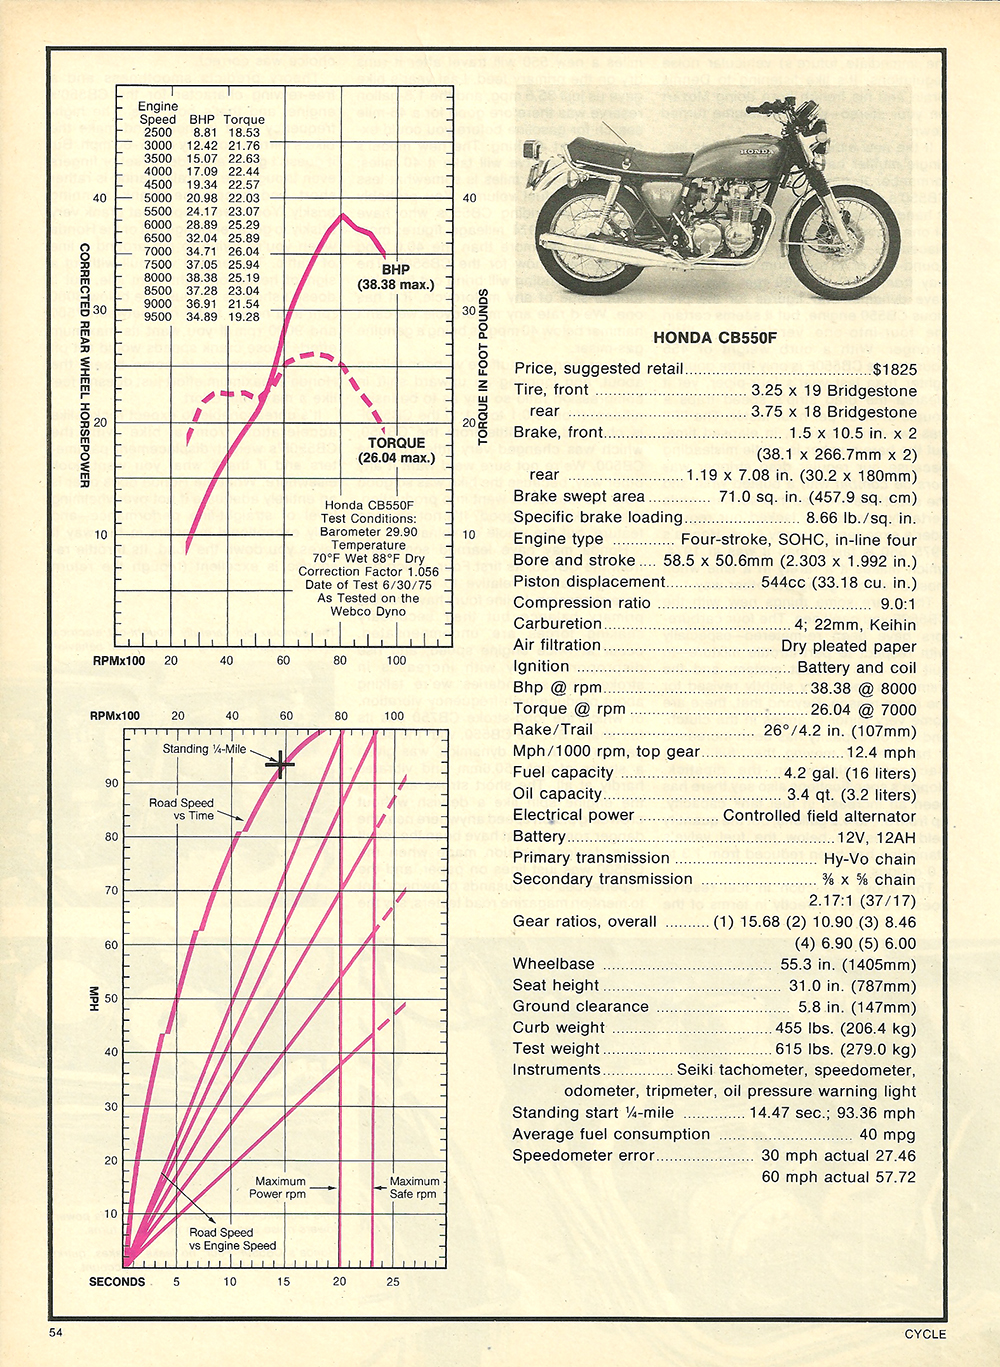 Ft 500 Wiring Diagram Honda Cb1000 2014 Data Schema 1983 Ft500 Ascot New Retro Motorcycle Cb1000r